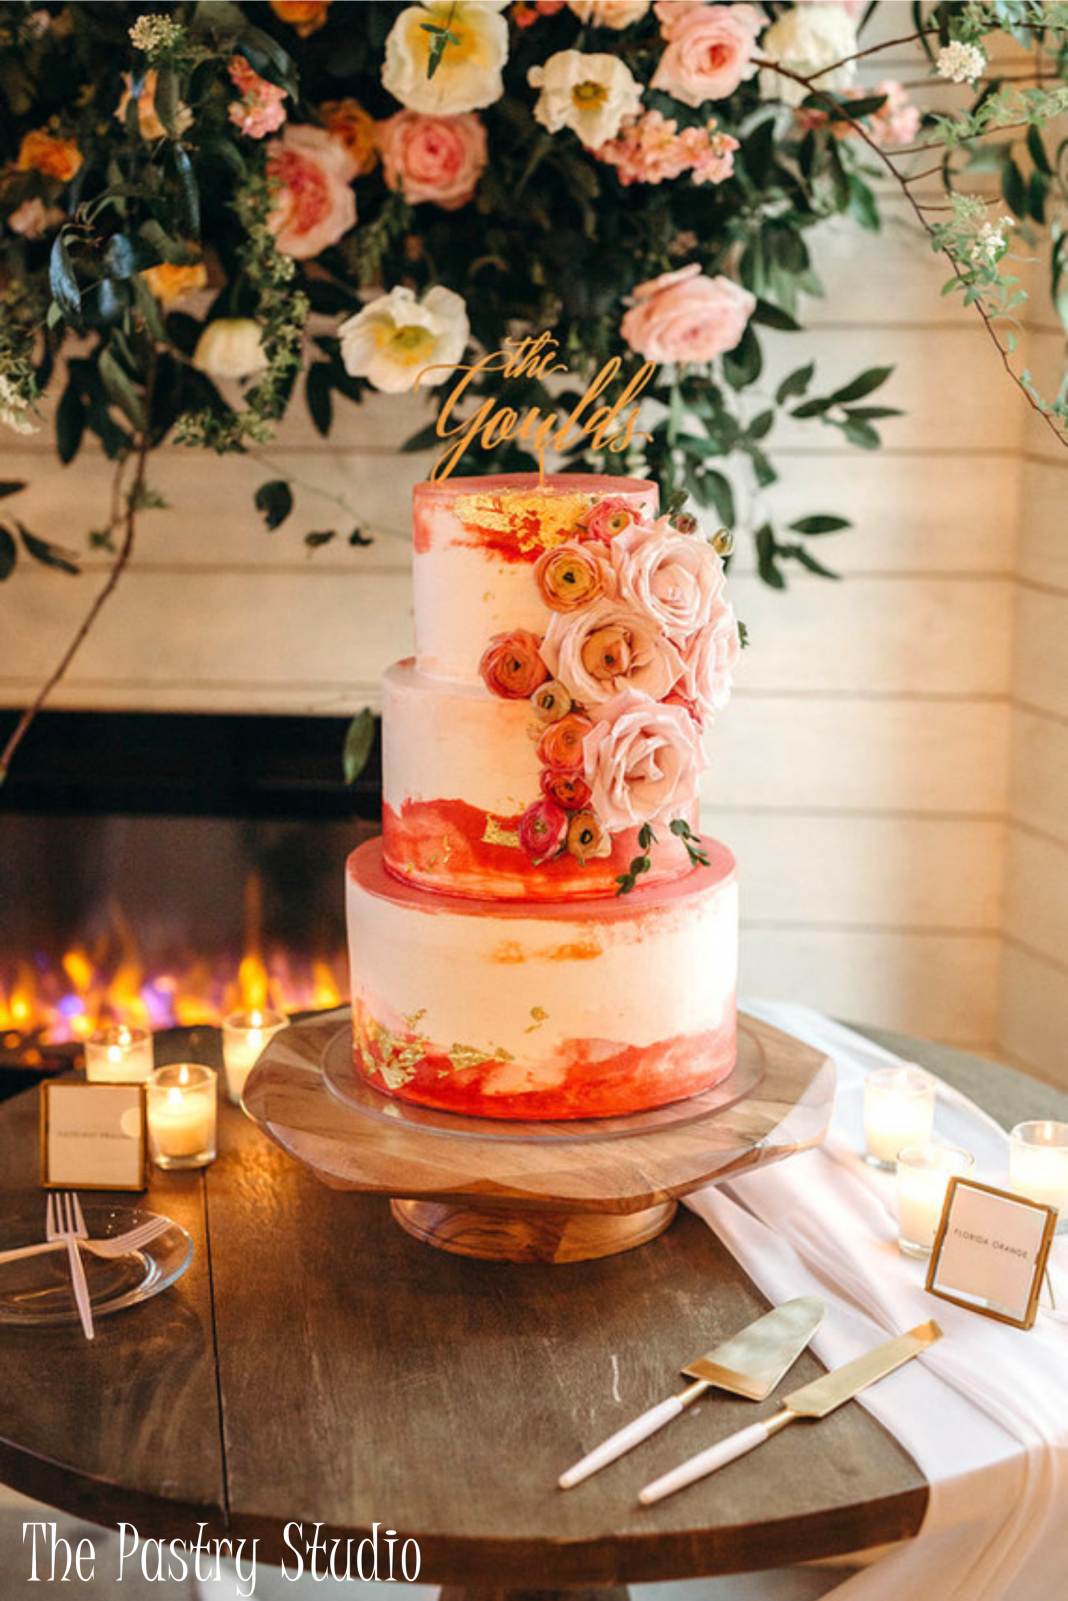 FEATURED Wedding Cake with Blush Garden Roses, Buttercups Ranunculus, Vivid Shades of Peach, & Orange complemented by Gold Gilded Foiling by The Pastry Studio – The Pastry Studio